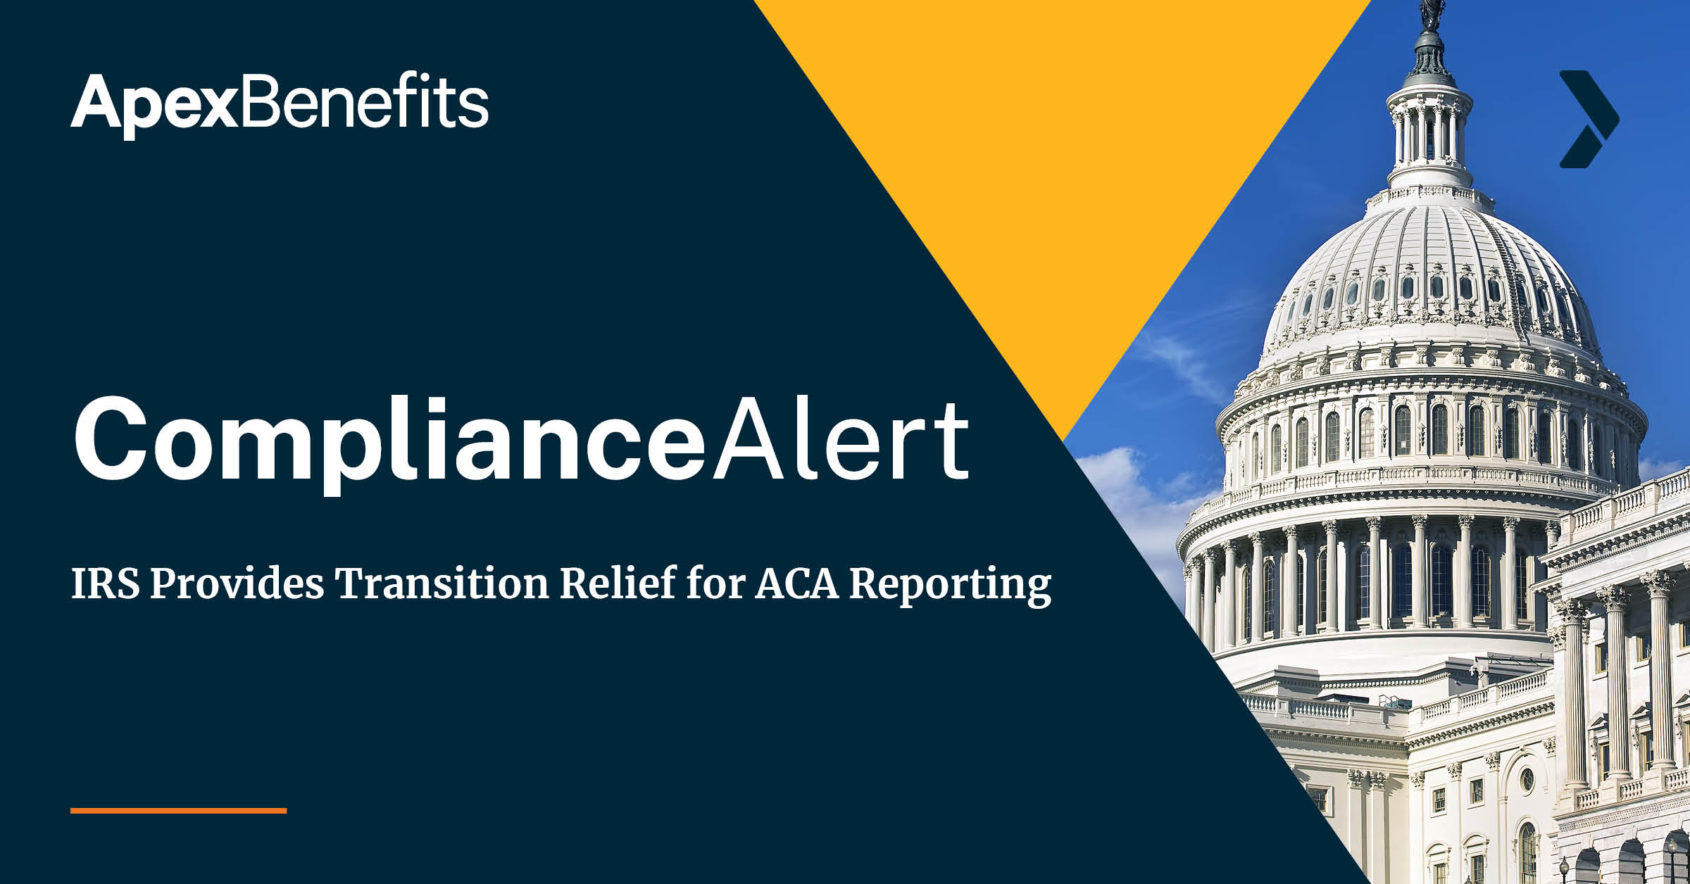 IRS Transition Relief ACA Reporting